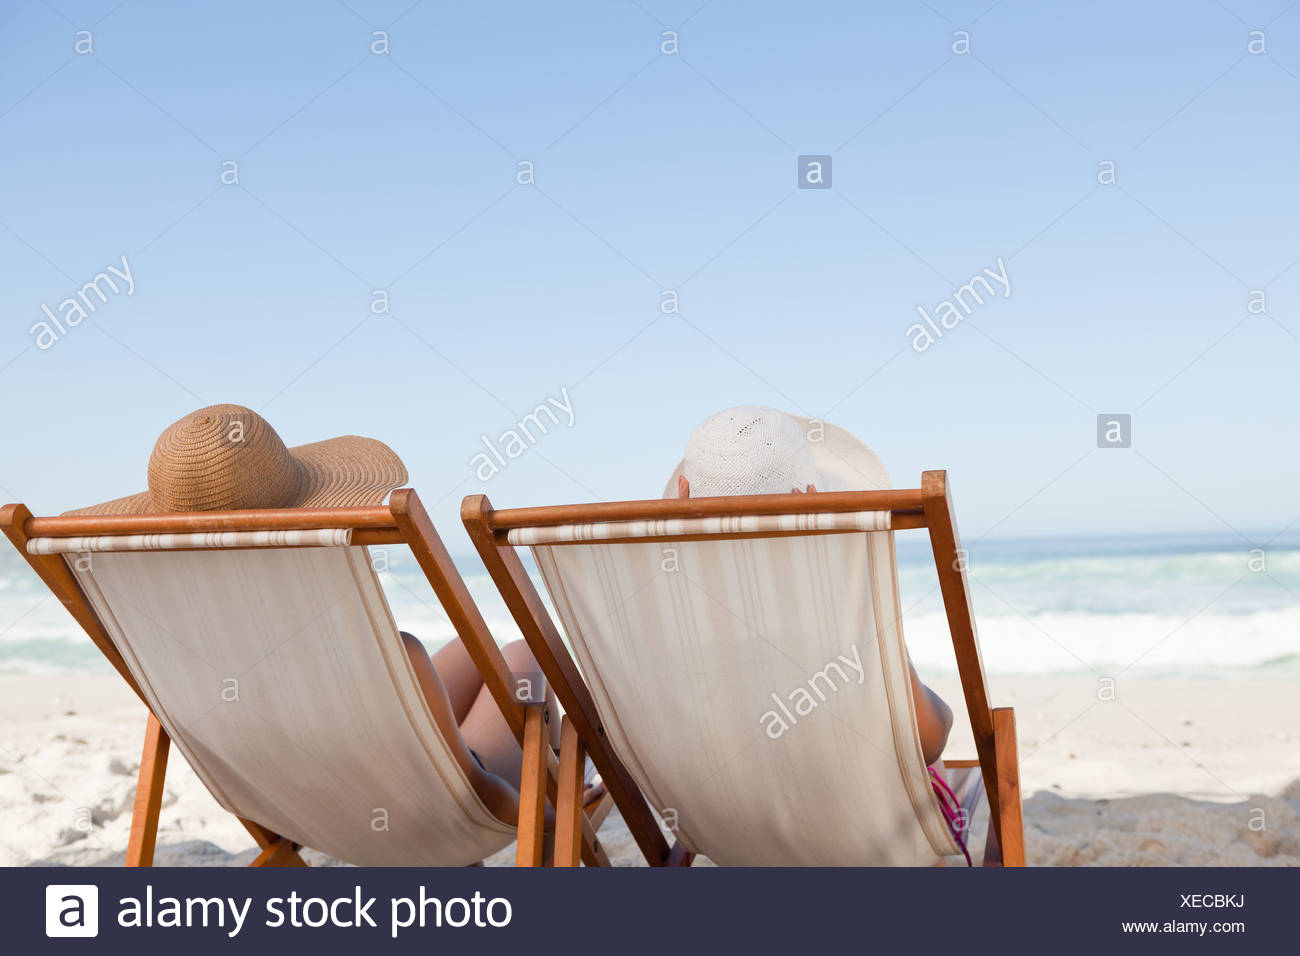 Young Women Sunbathing While Sitting On Deck Chairs On The Beach